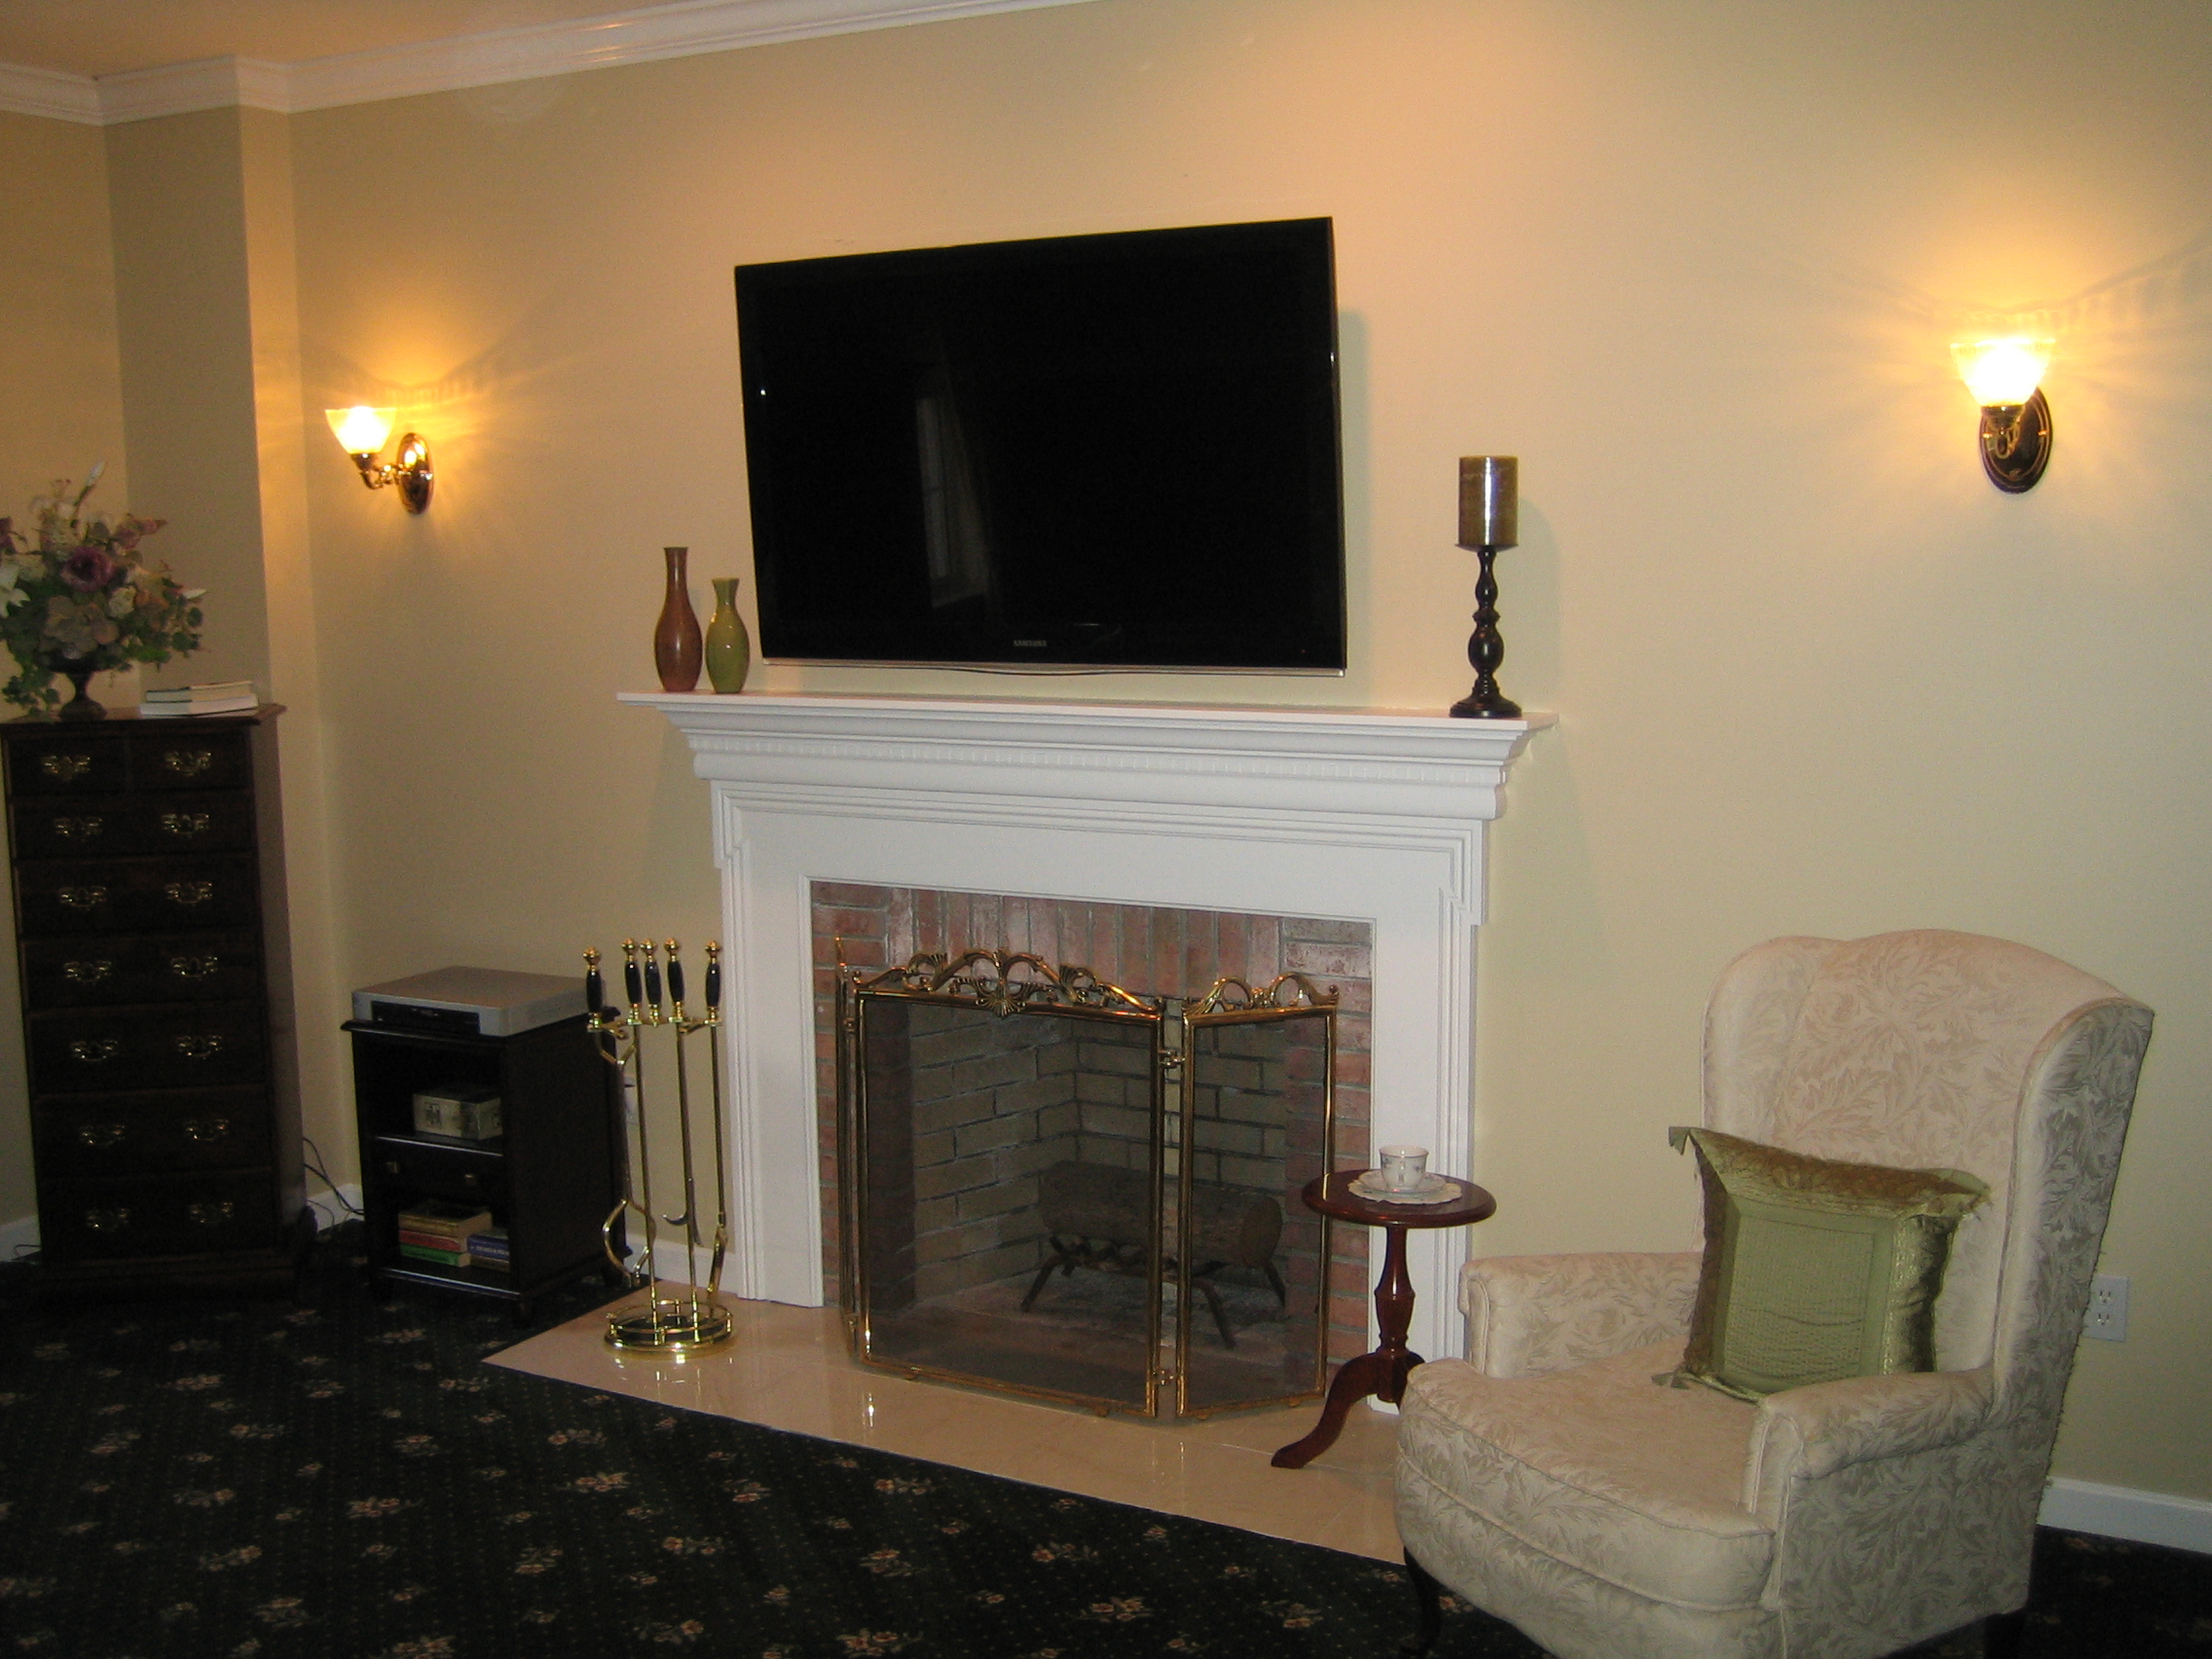 Clinton CT – TV Install above fireplace in wall wire